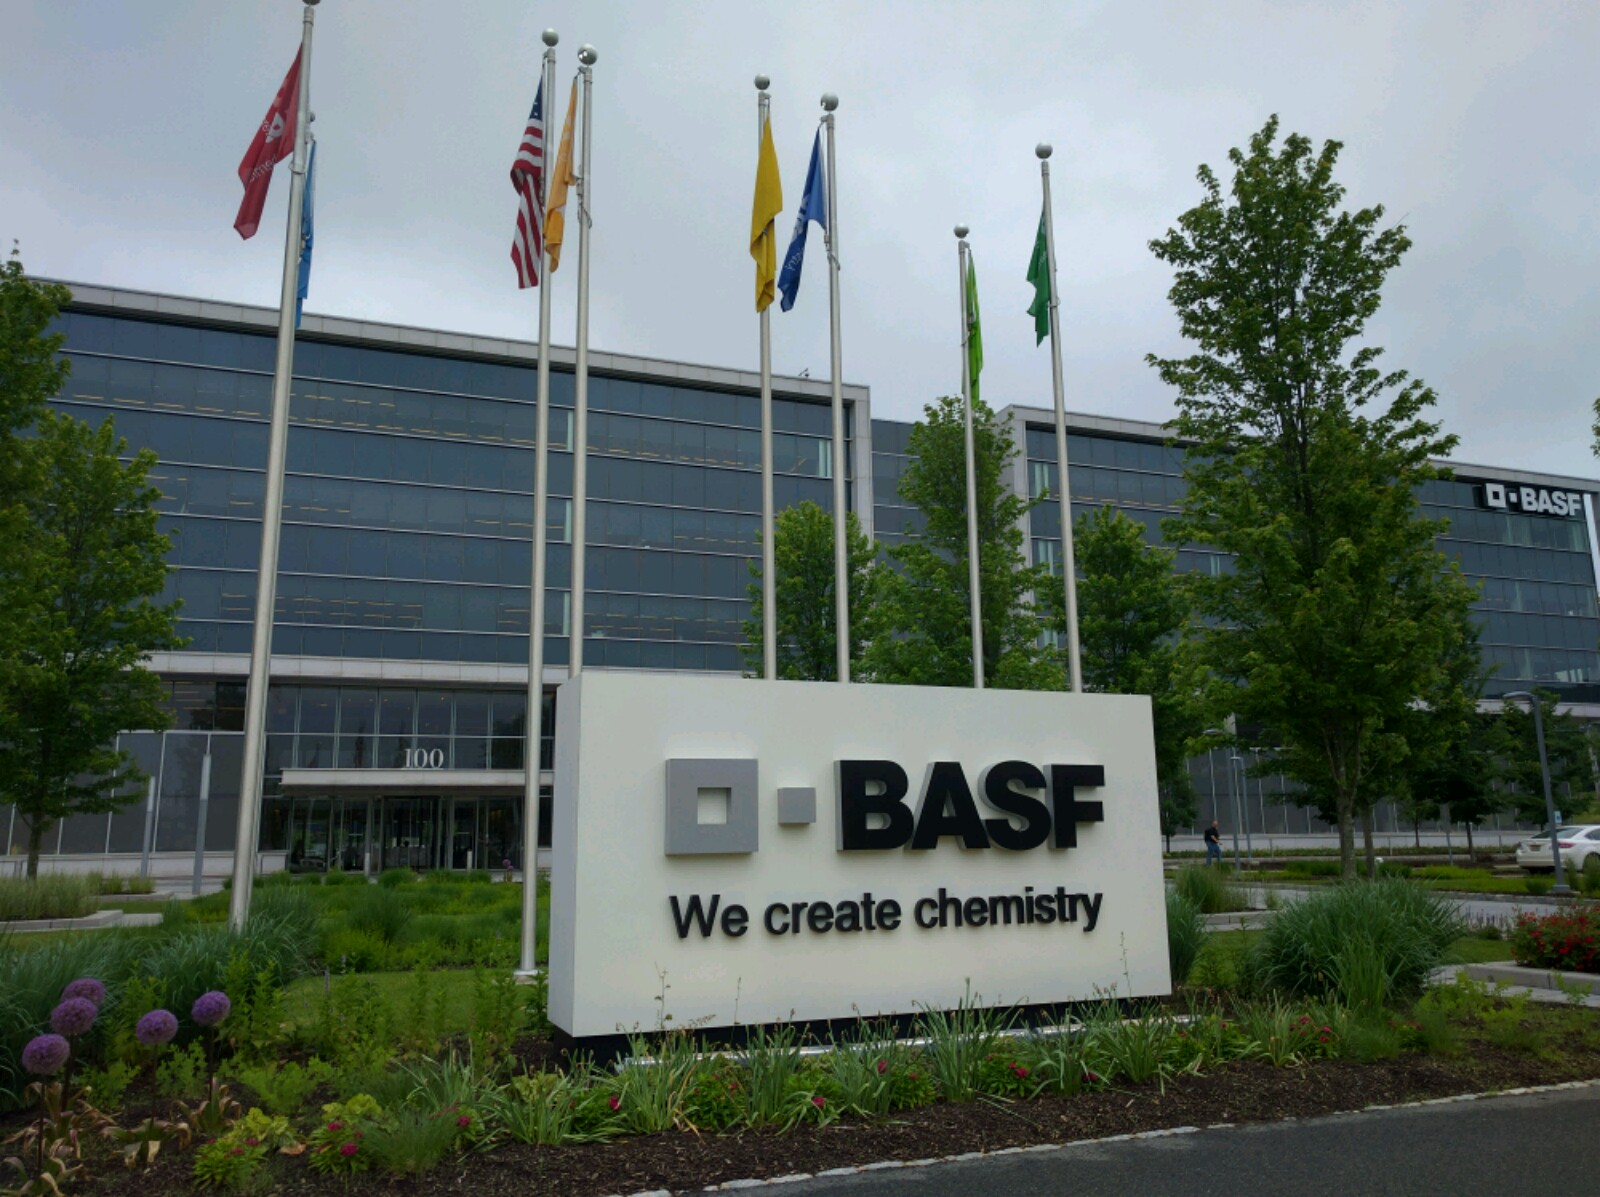 Entrance to BASF's office in Florham Park, New Jersey.